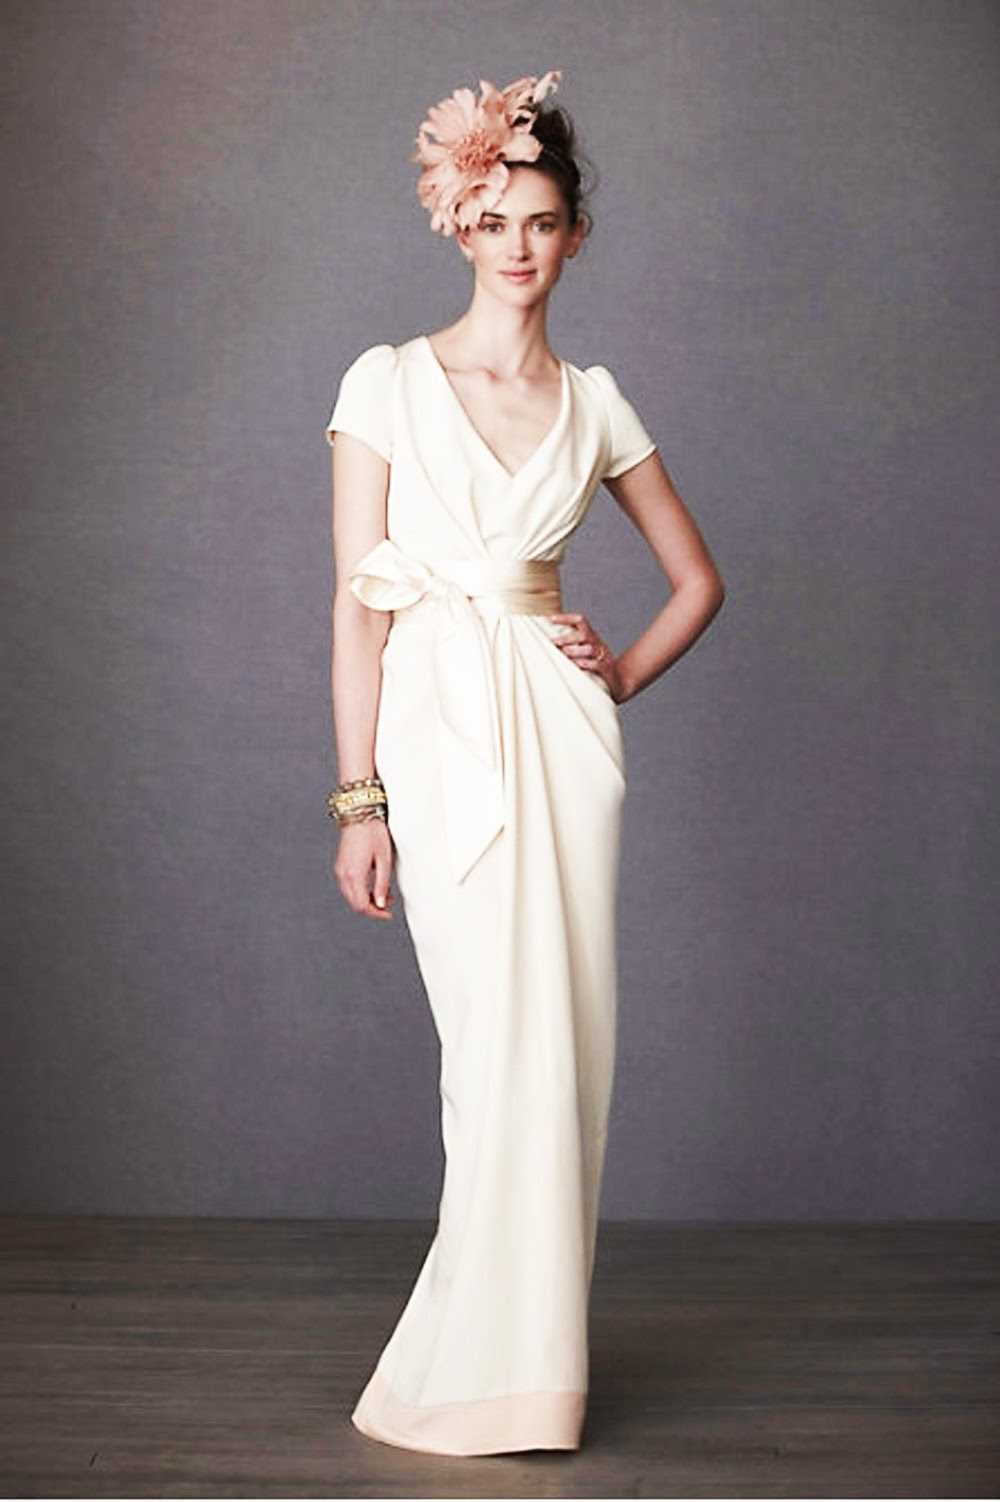 Viola plays the world vintage wedding dress 1920 1970s for Vintage wedding dresses 1920s